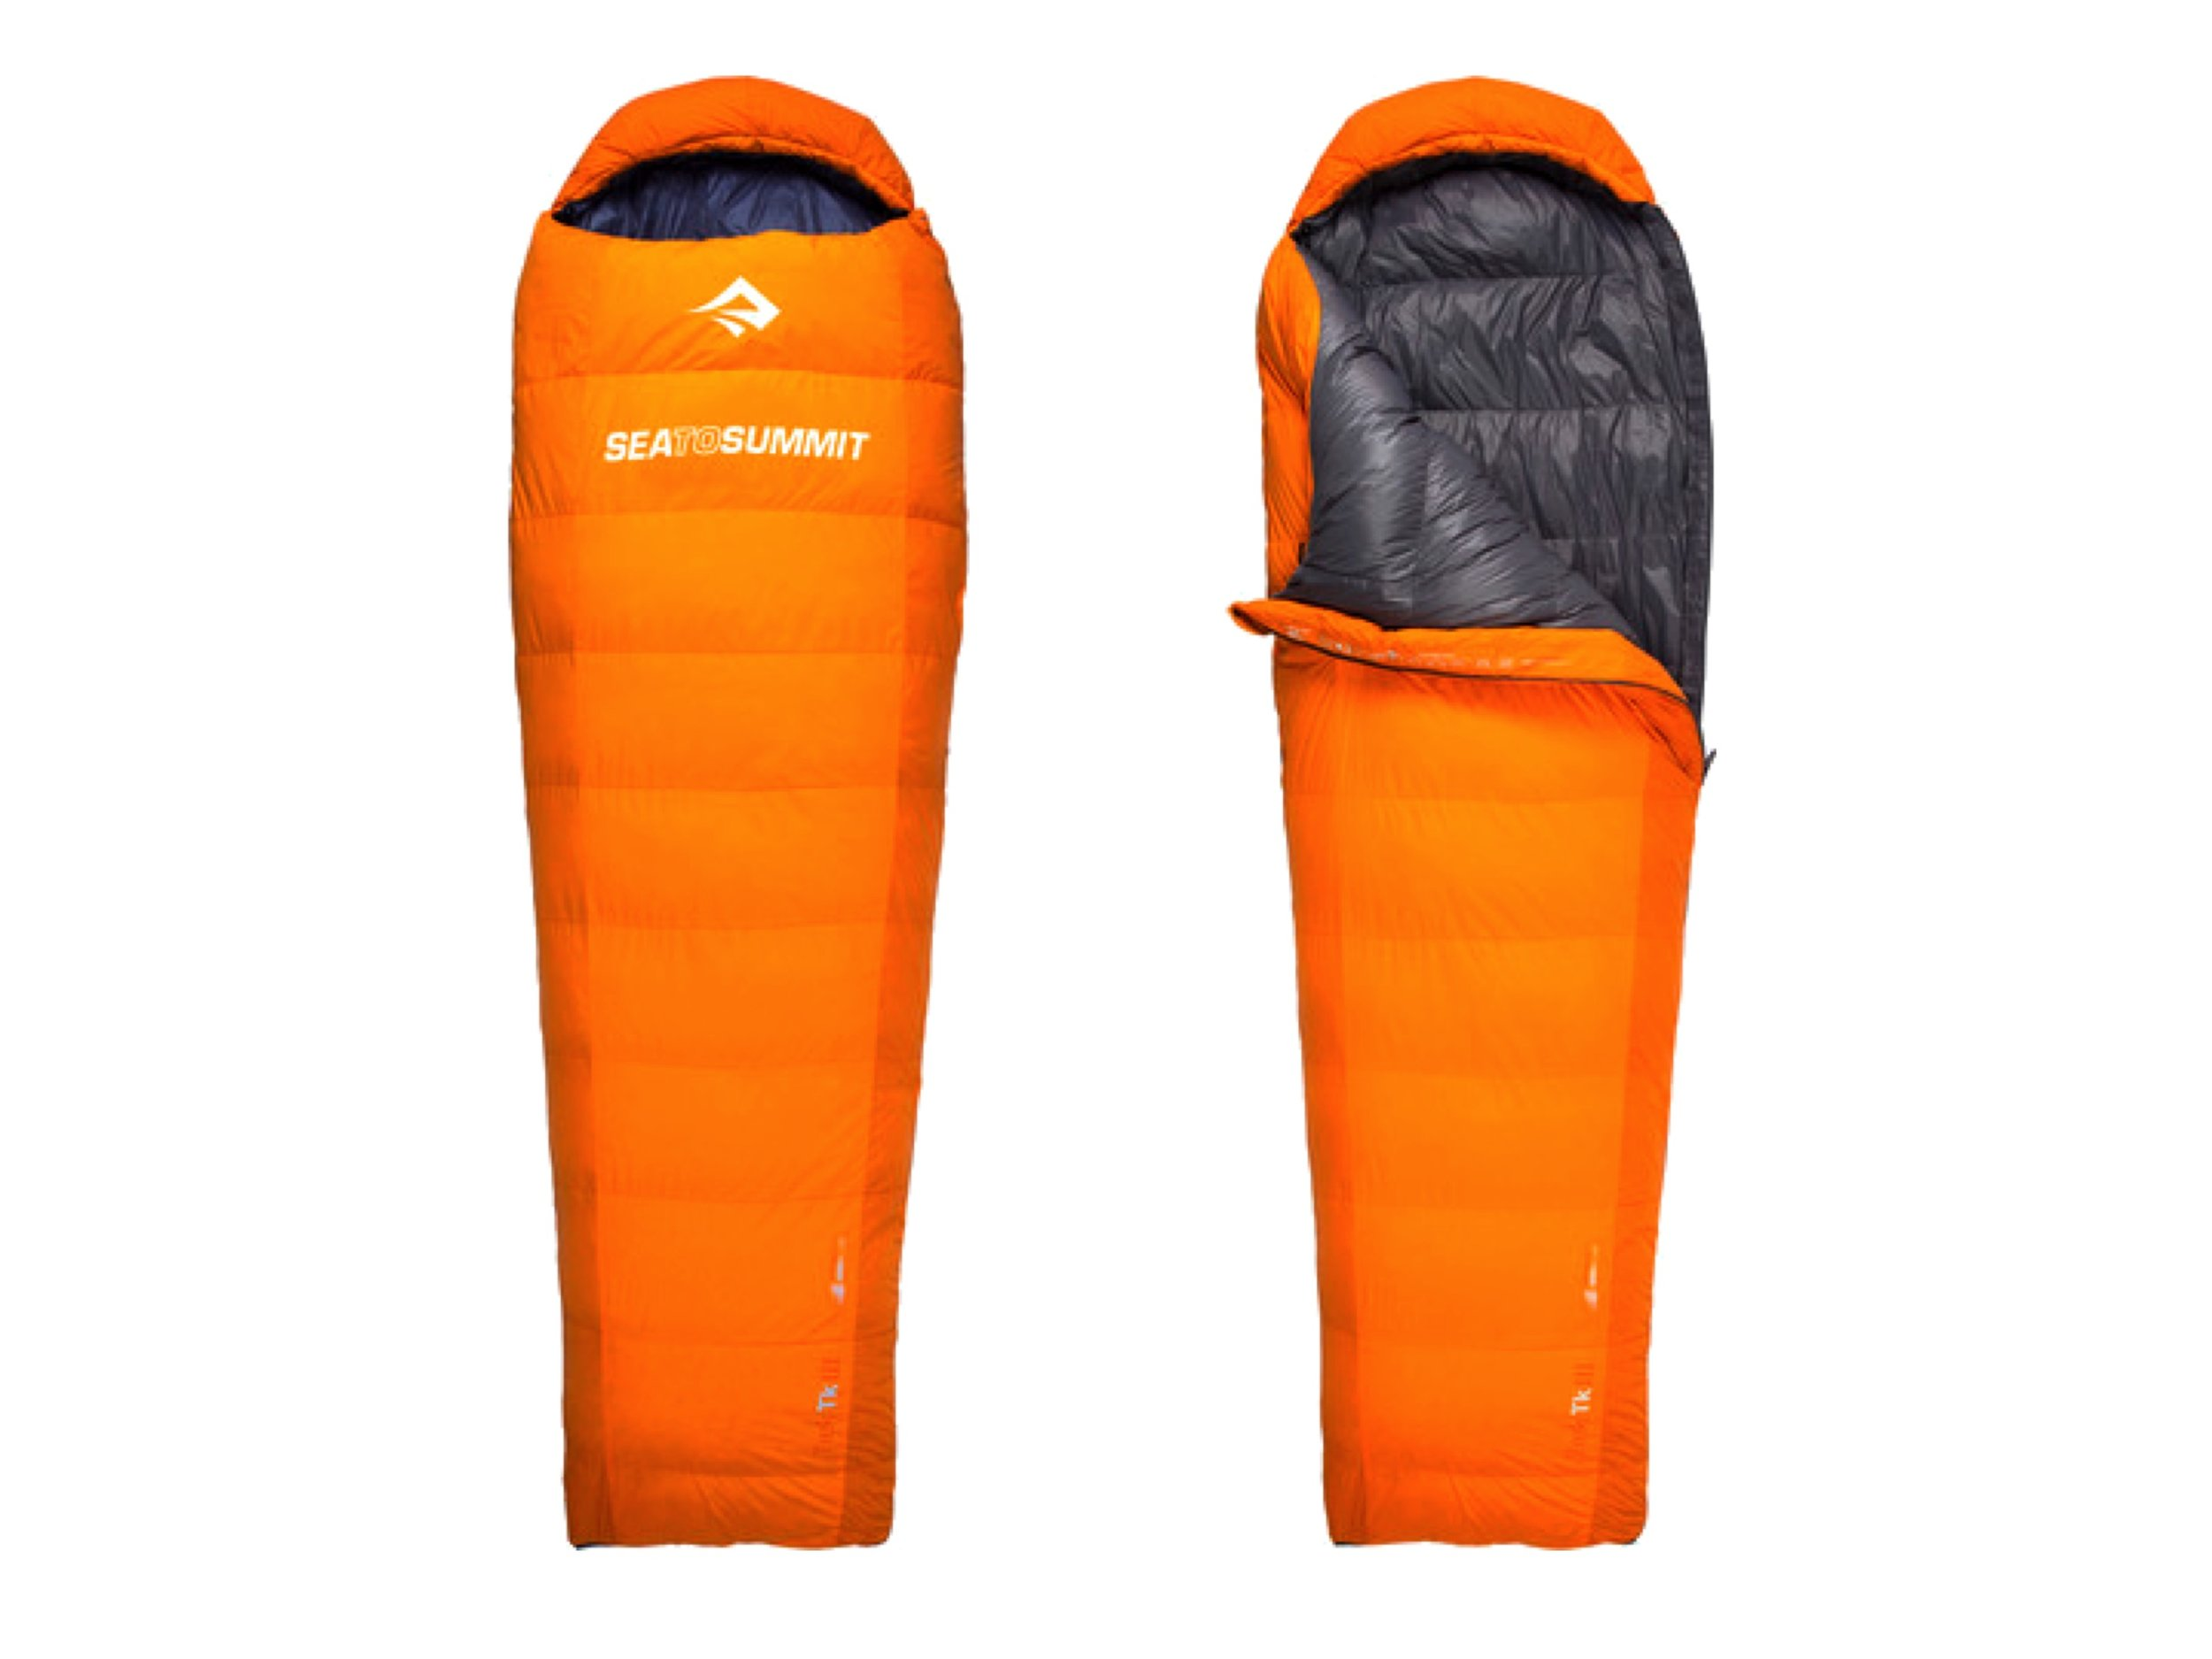 Sea to Summit - Trekking Sleeping Bag - TKIII